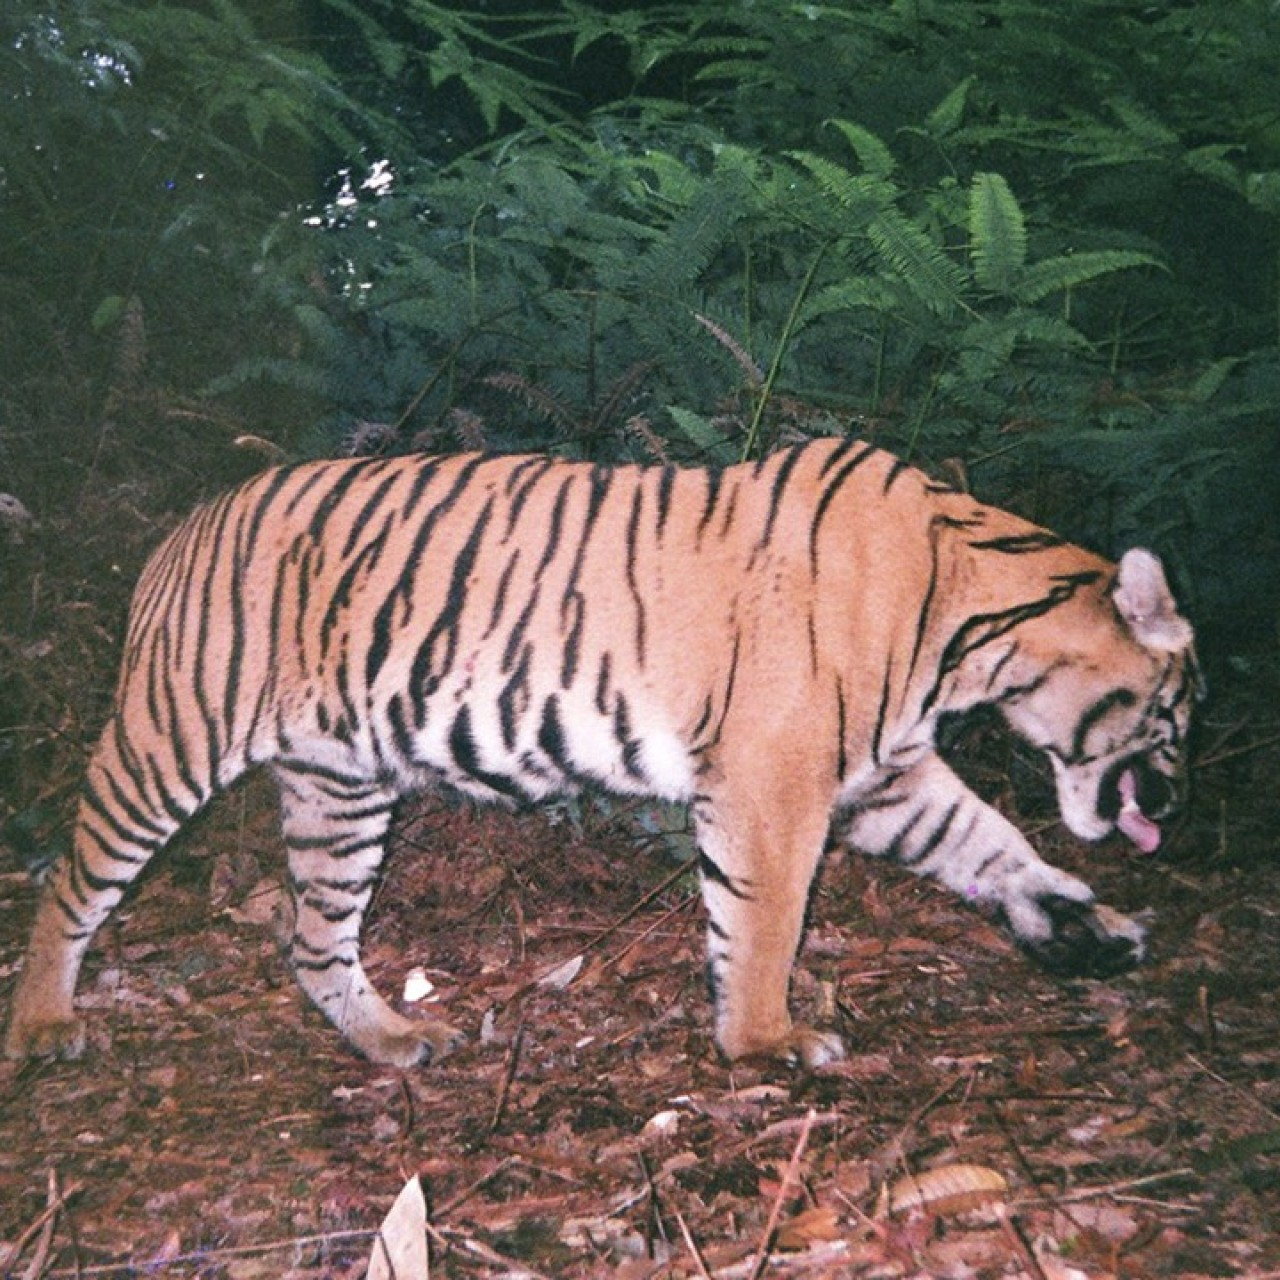 Superstitious villagers feared endangered Sumatran tiger was a shape